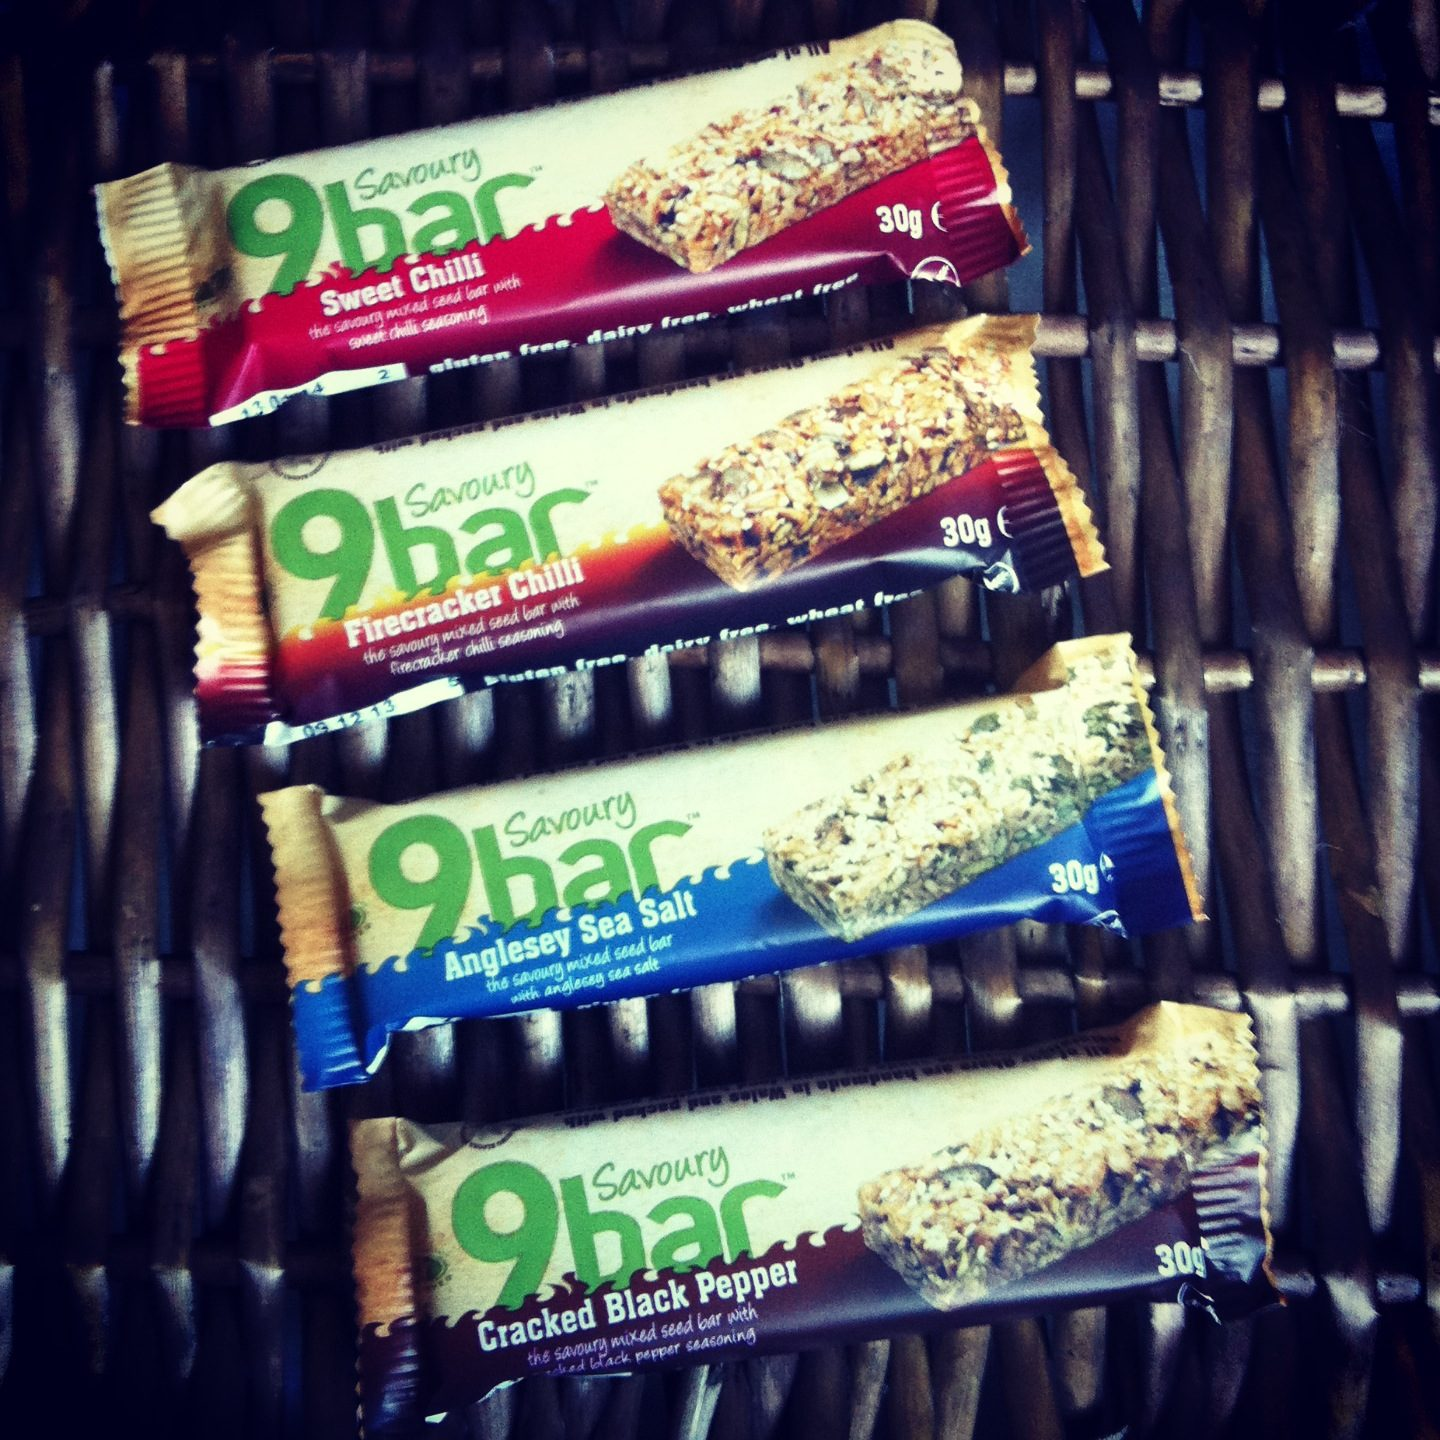 Product Launch: The Savoury 9bar